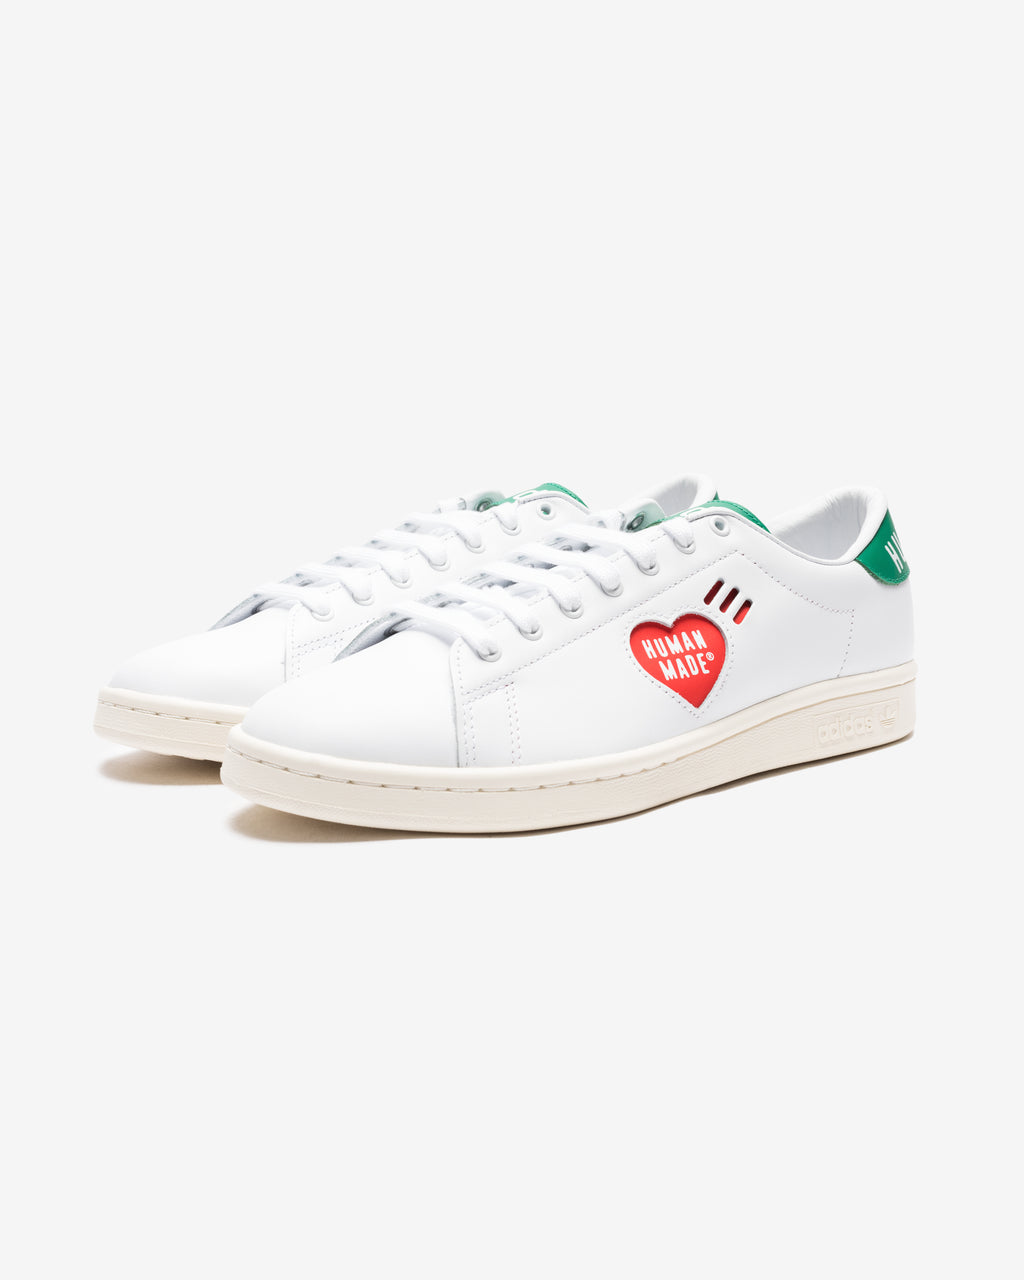 ADIDAS X HUMAN MADE STAN SMITH - FTWWHT/ OFFWHT/ GOLDMET